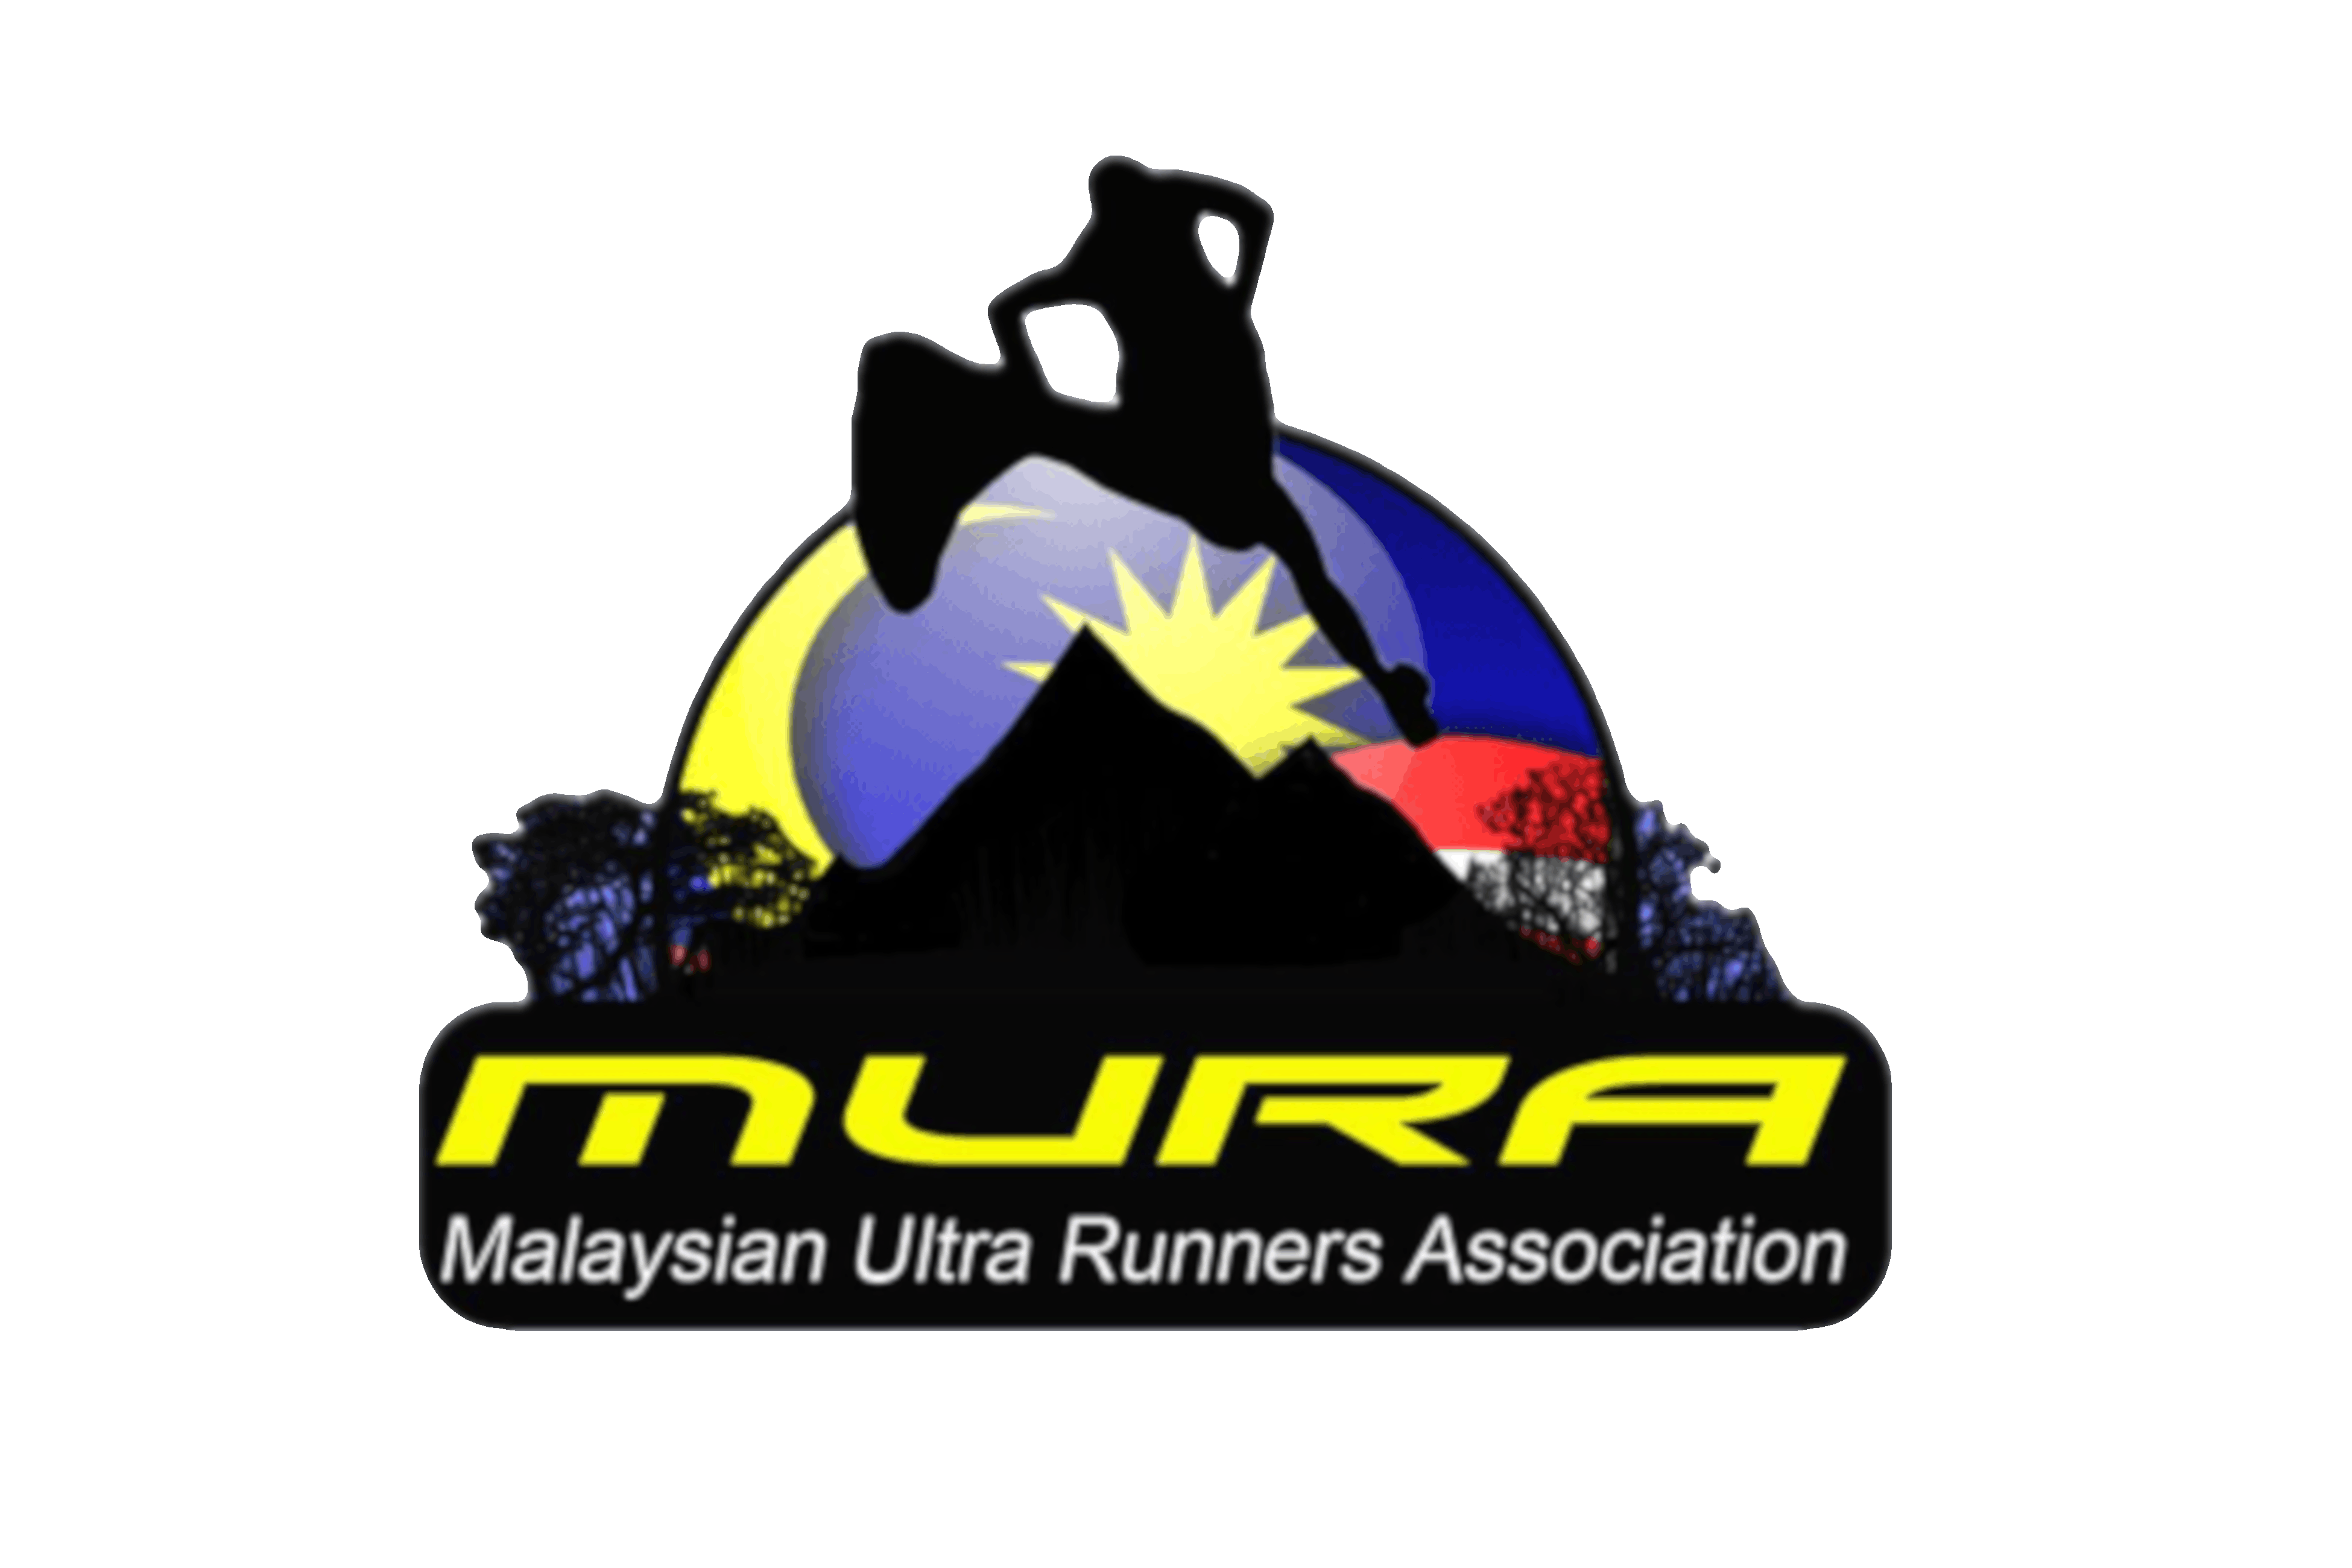 Malaysian Ultra Runners Association